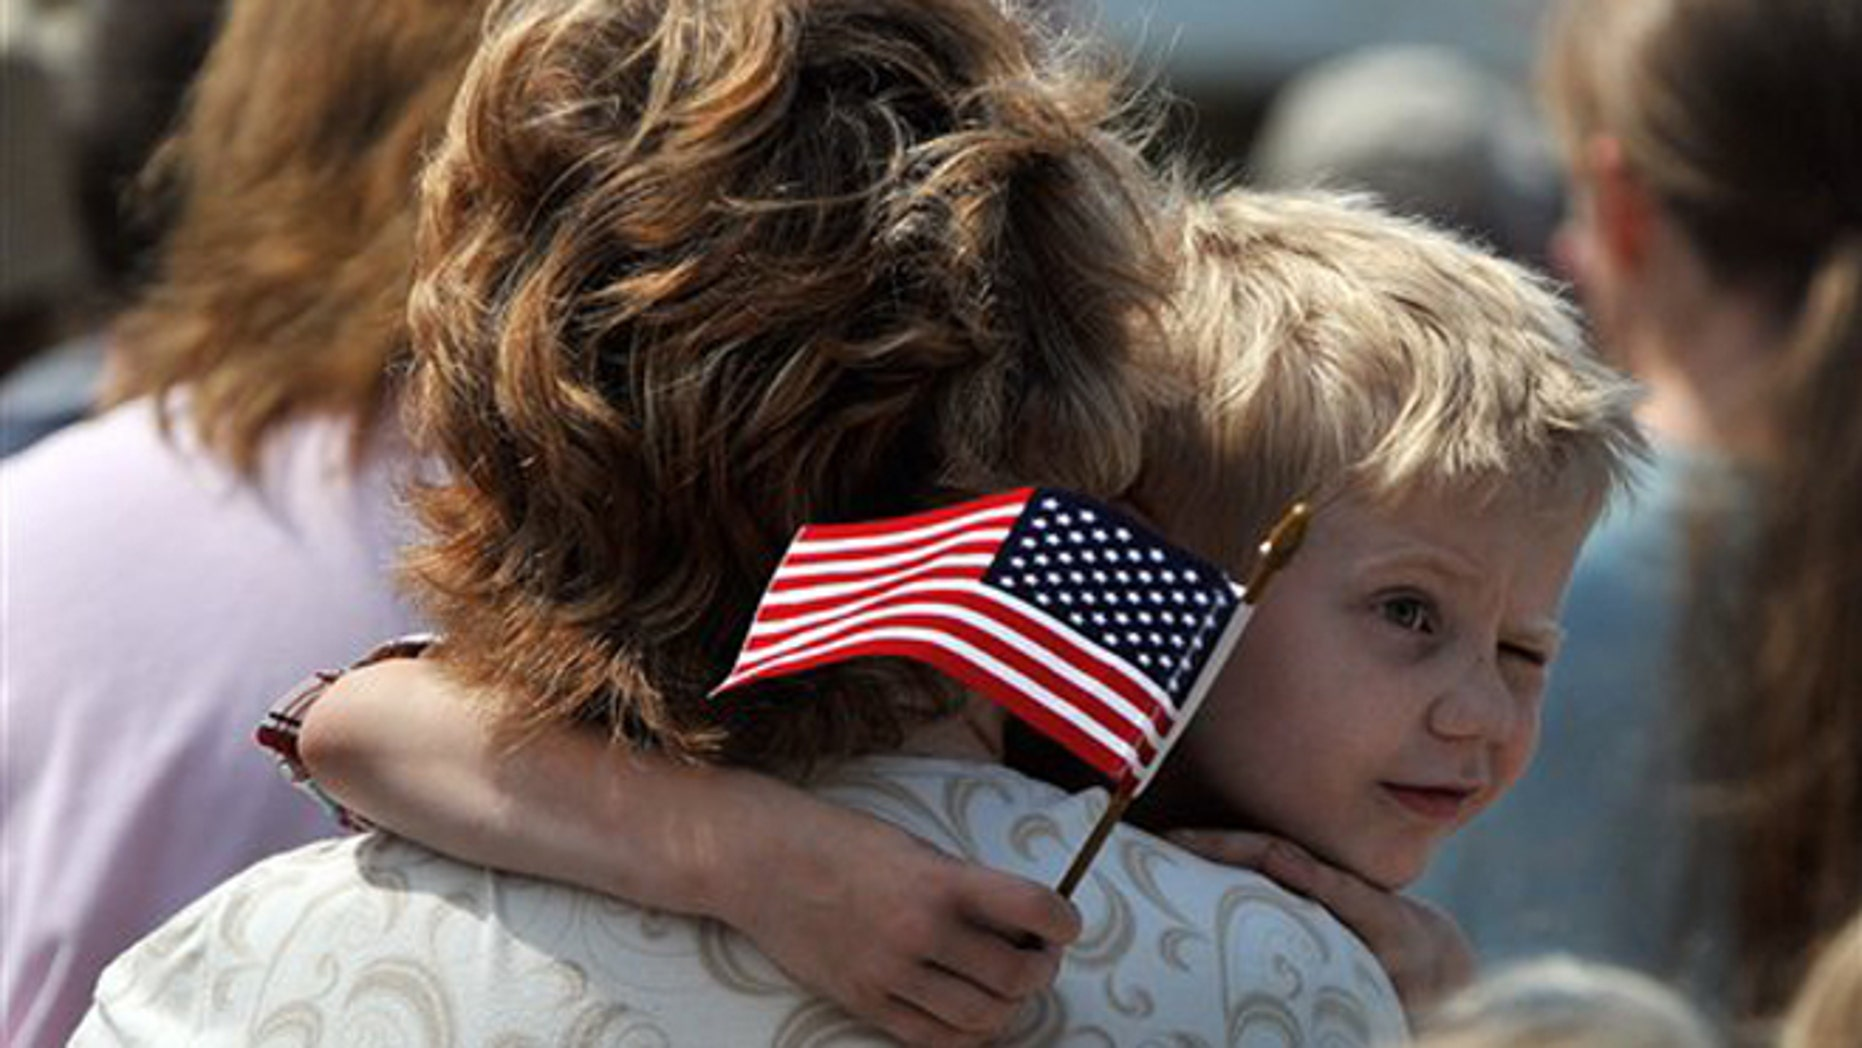 FILE -- Monday, May 28, 2012: Austin Bunyard, 5, squints in the bright sun as he watches veterans salute the American flag during a Memorial Day ceremony on the Rock Island Arsenal in Rock Island, Ill.